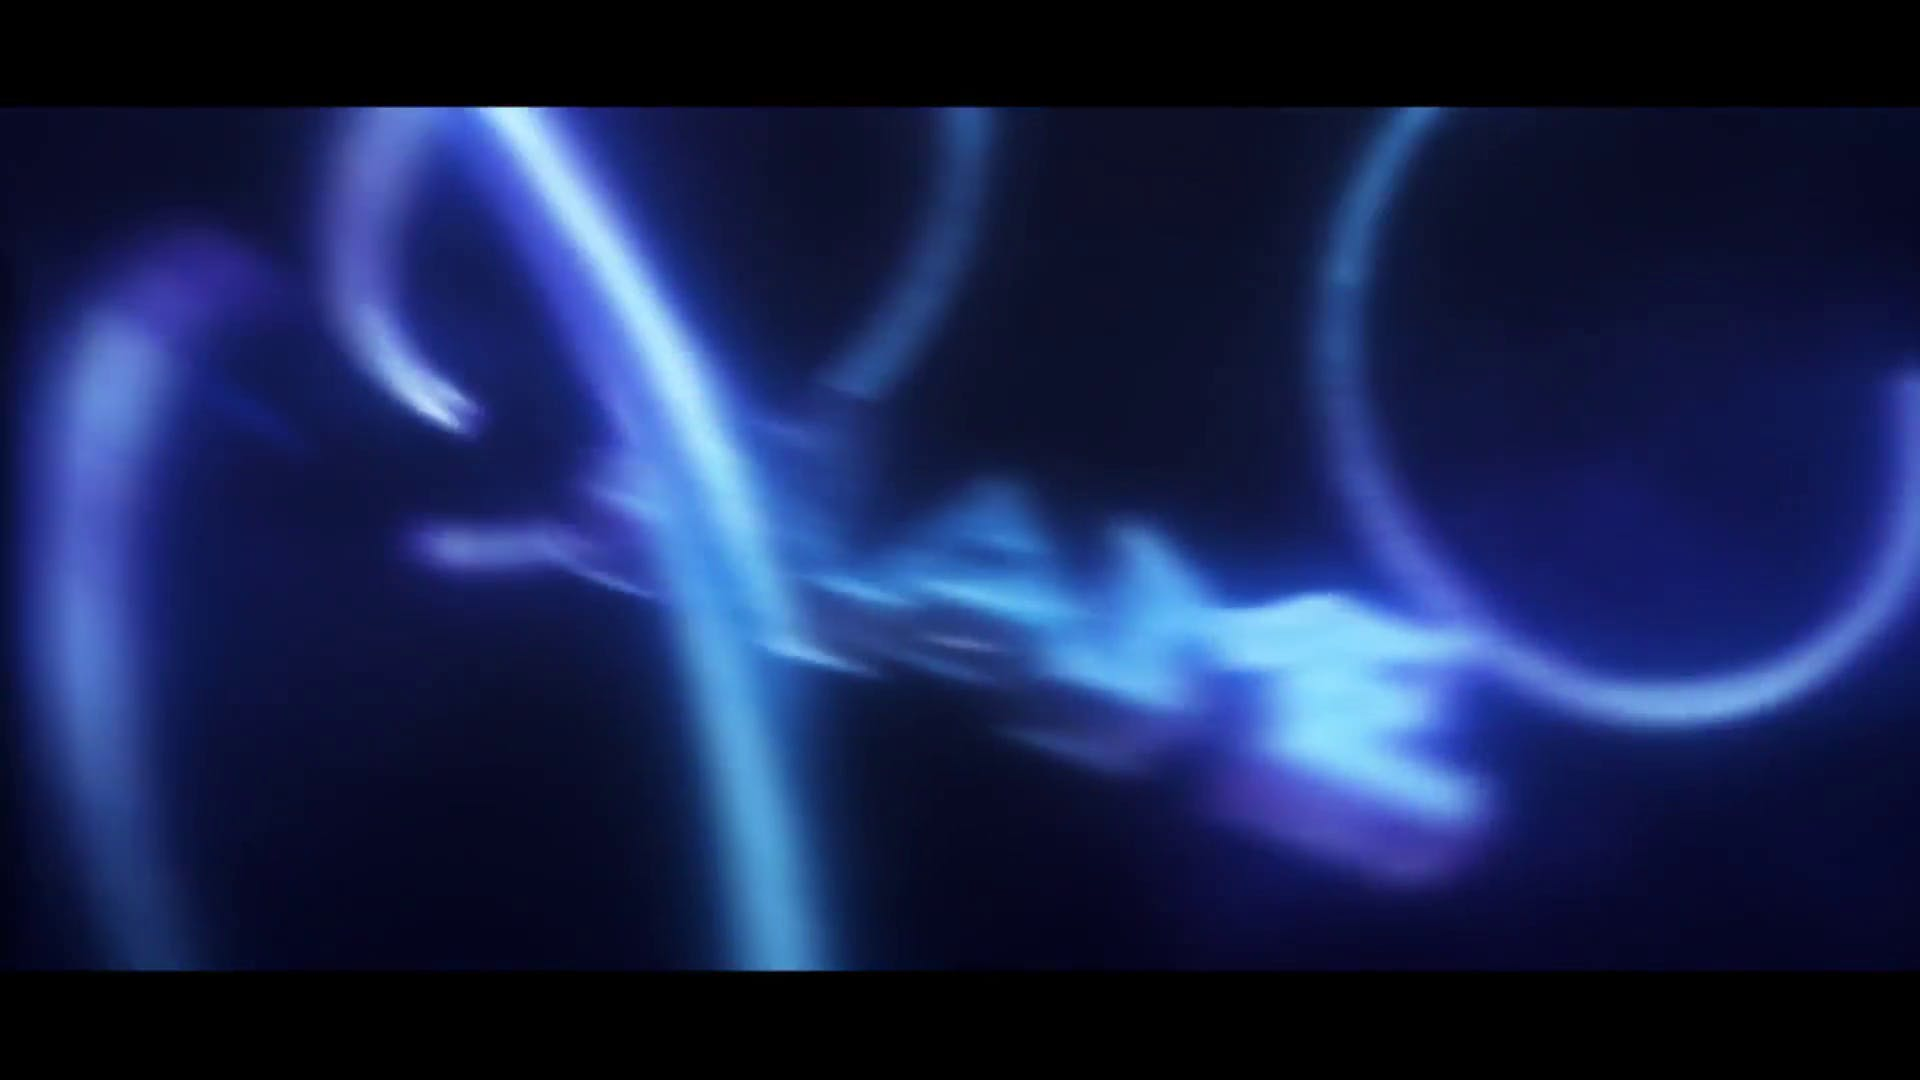 Blue Swirls Cinema 4D After Effects Intro Template FREE DOWNLOAD